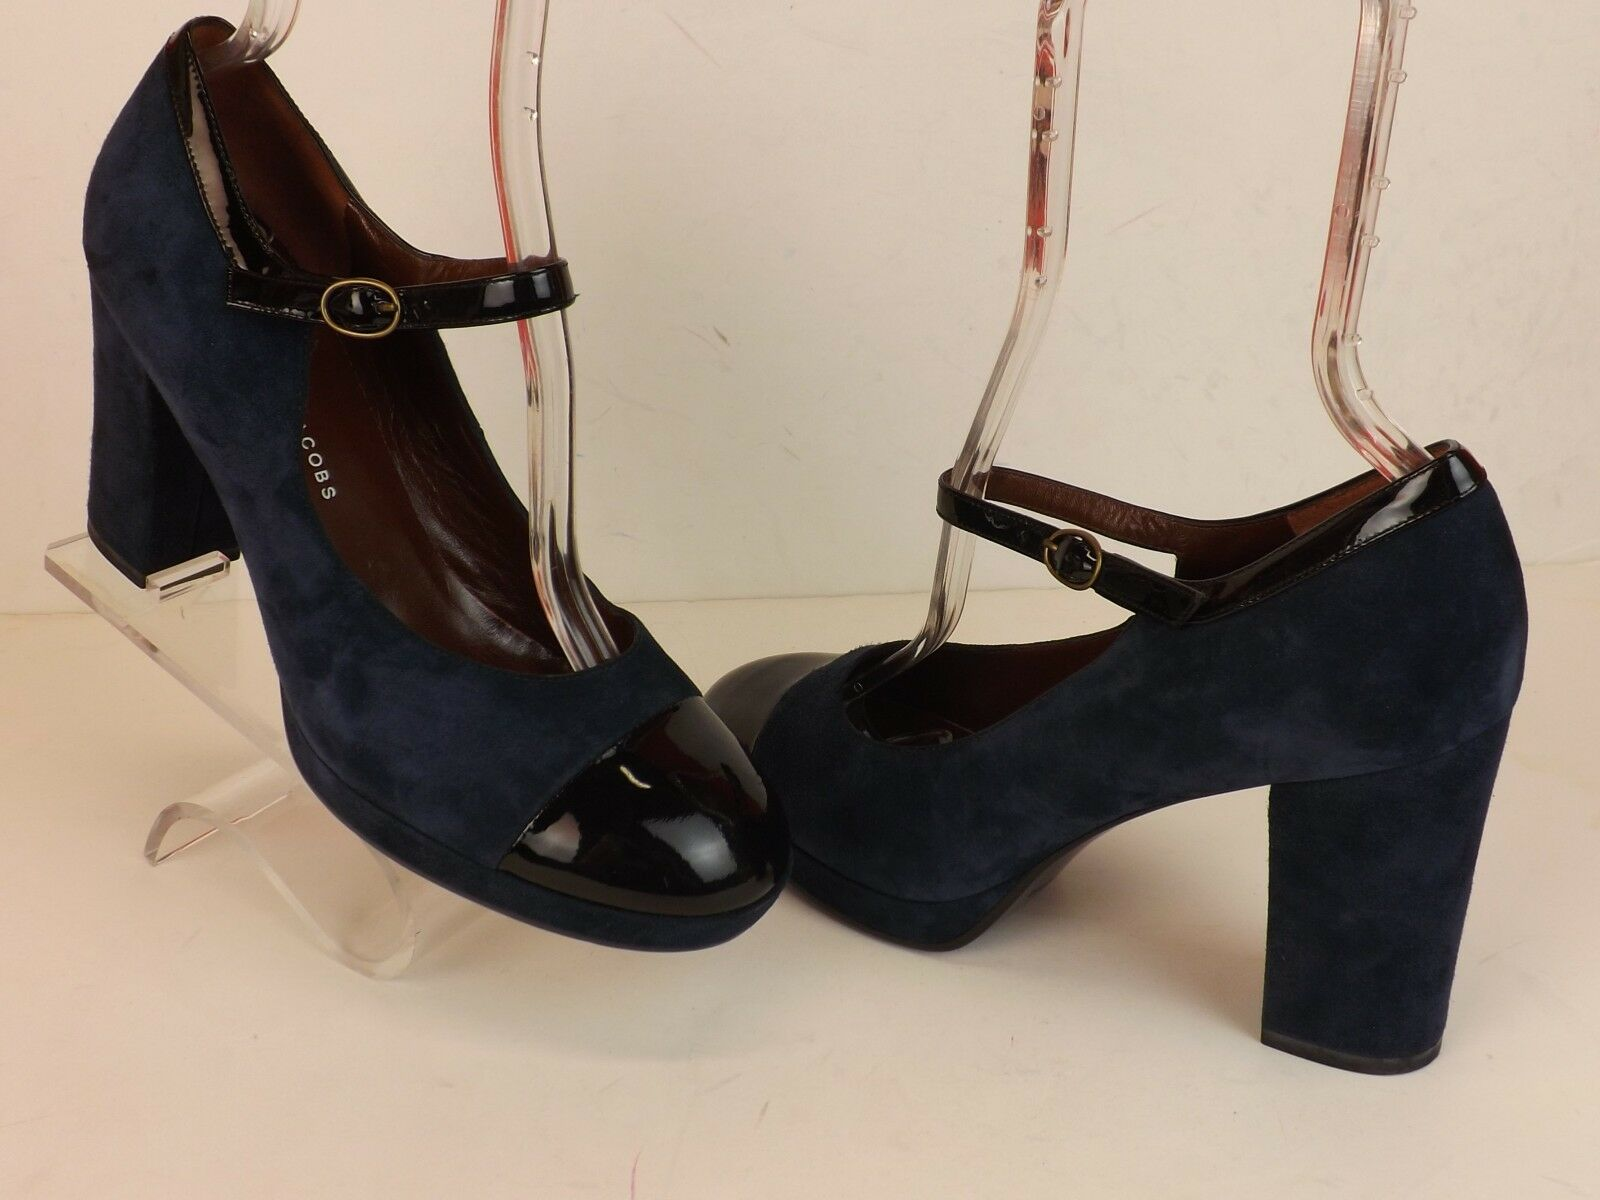 in vendita online NEW MARC BY MARC JACOBS DARK blu SUEDE ROUNDED TOE TOE TOE MARY JANE PLATFORM PUMPS 40  negozio online